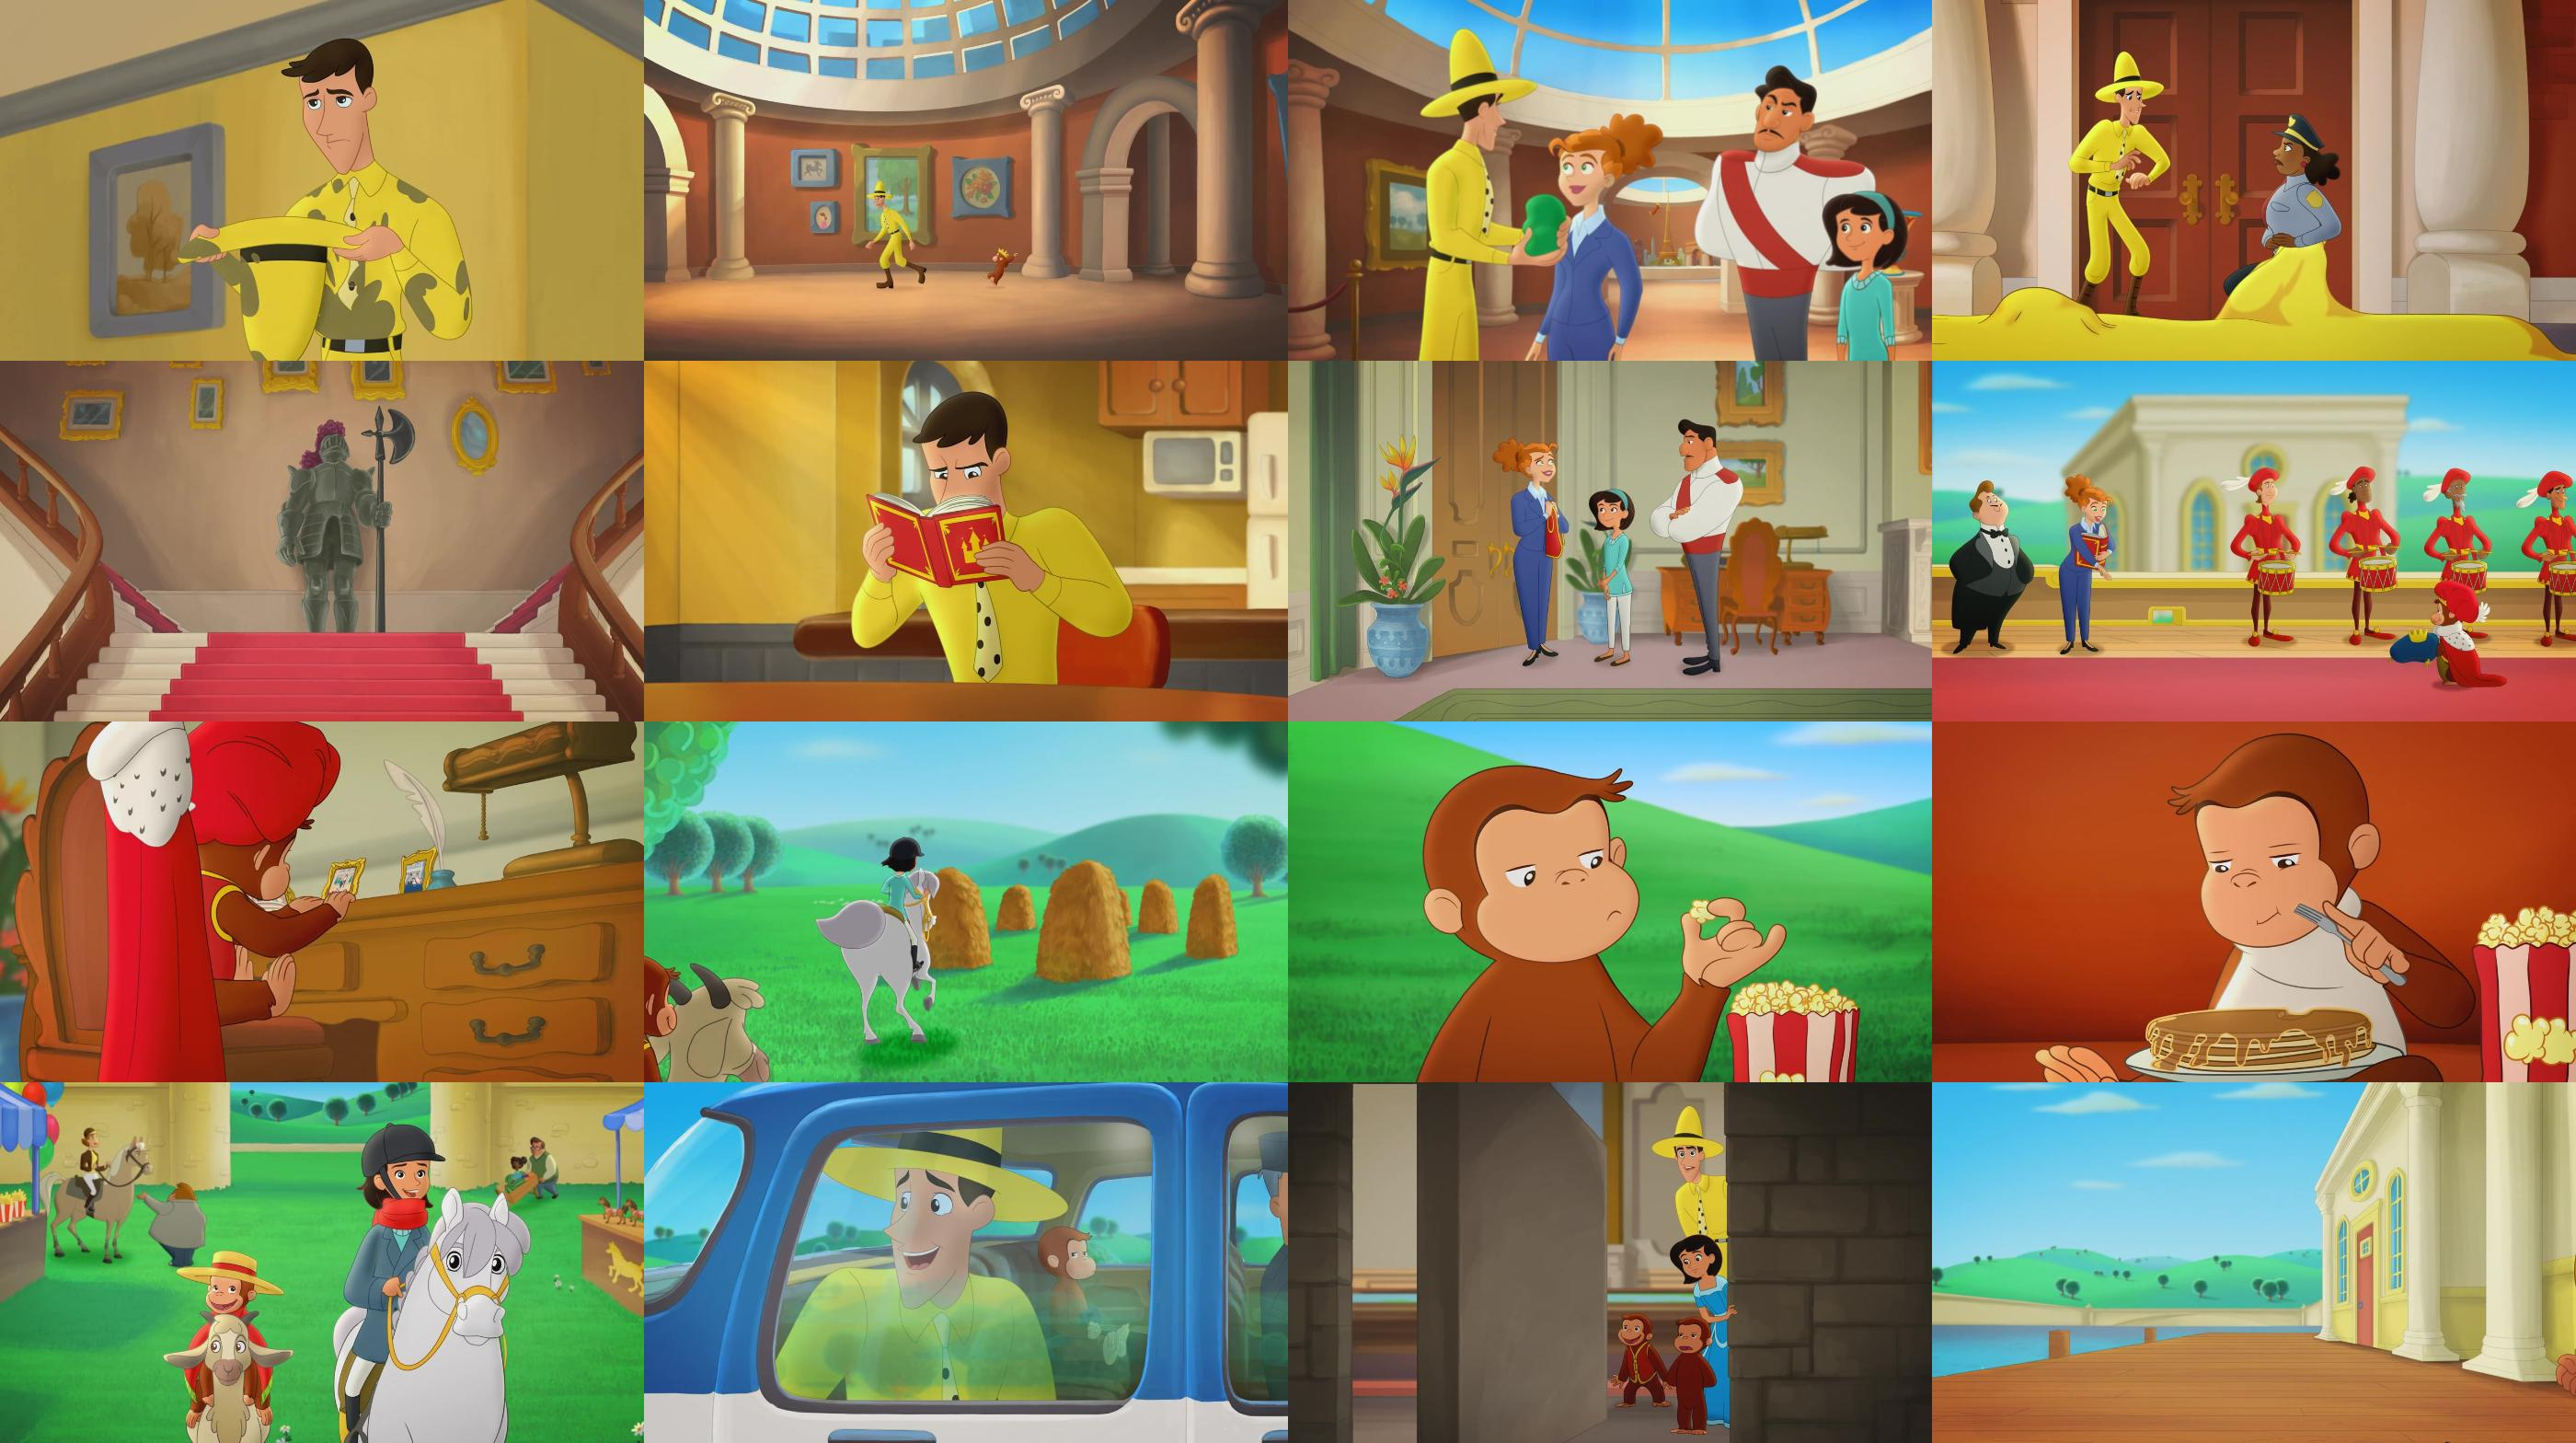 Curious George Royal Monkey 2019 720p WEB DL XviD AC3 FGT